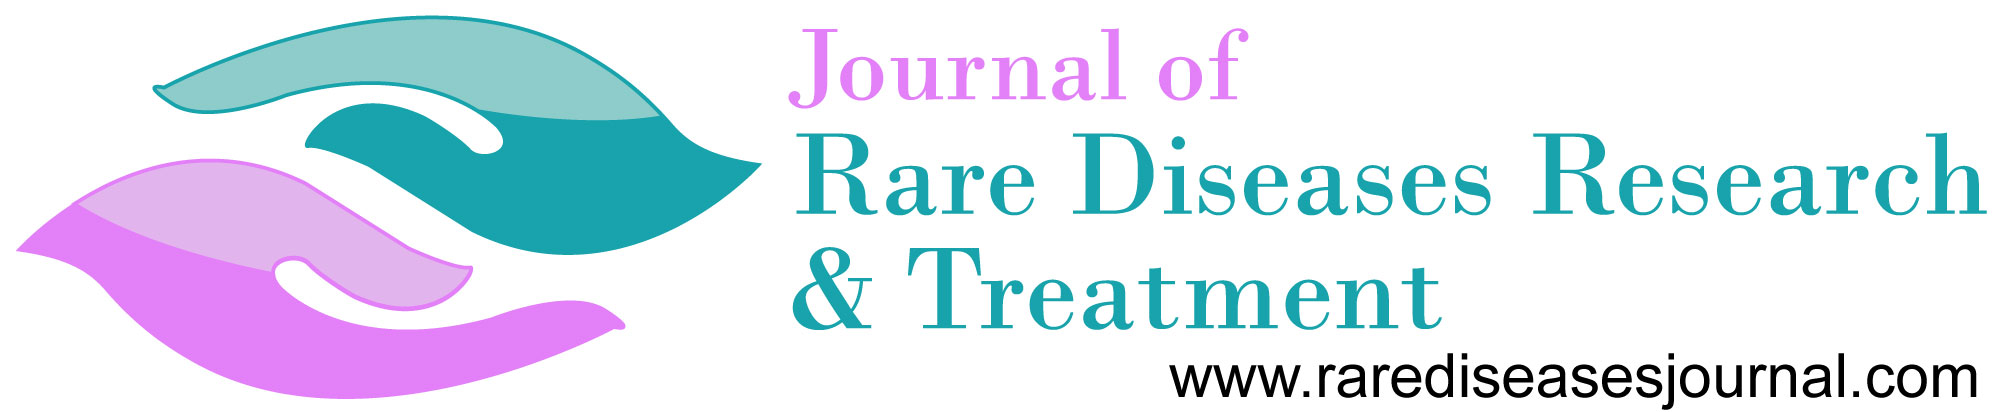 JournalOfRareDiseasesResearchLogo